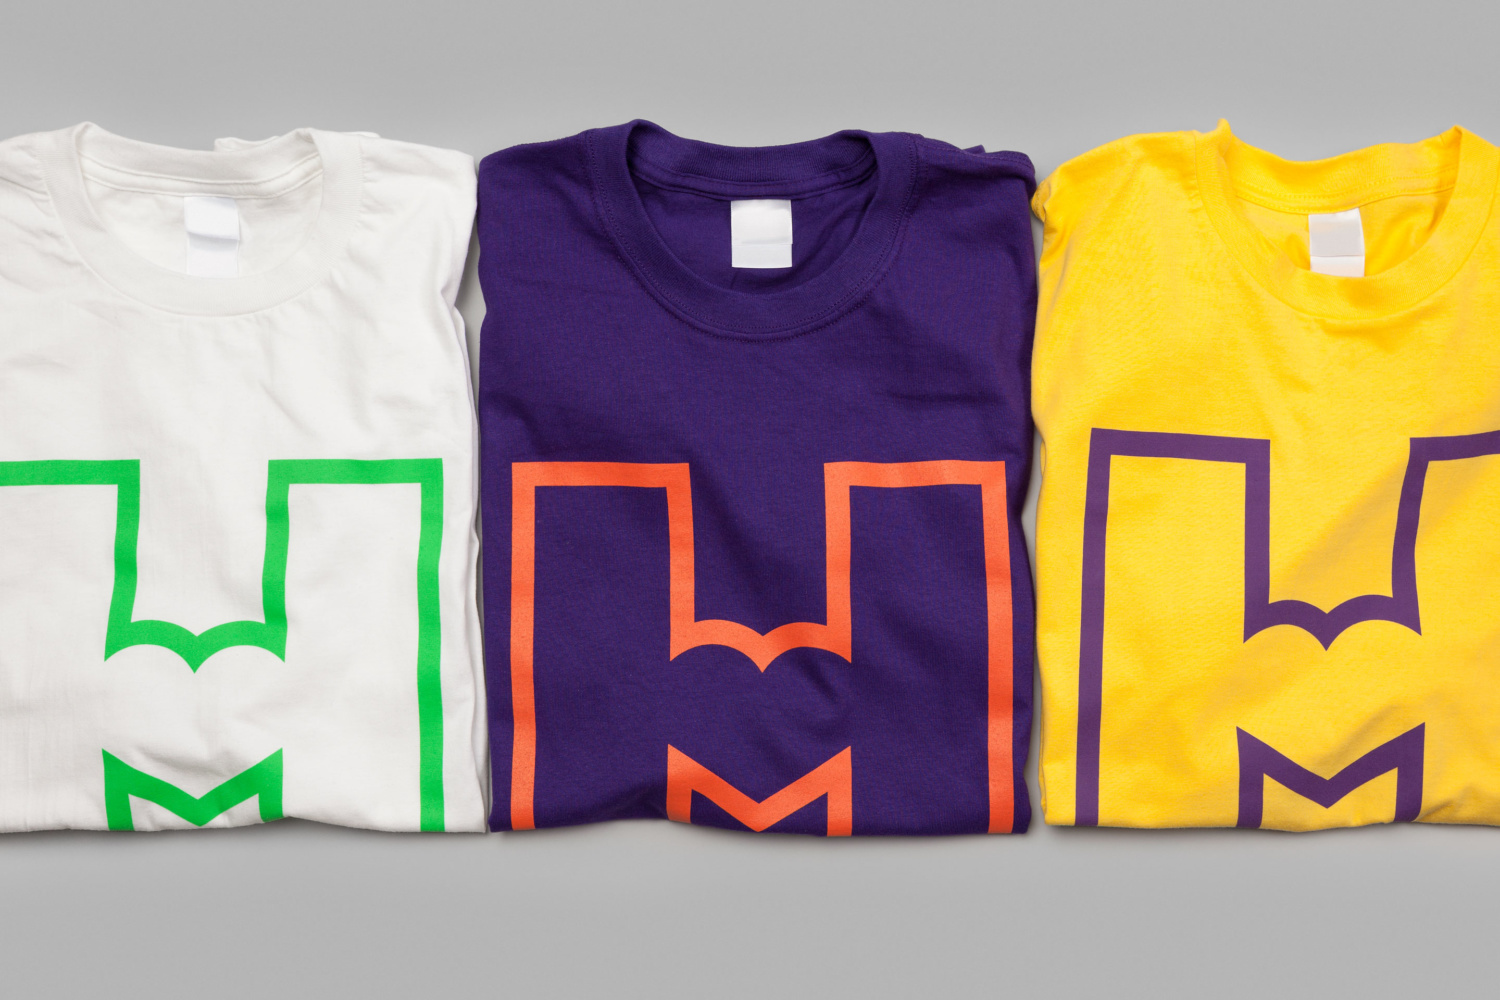 Logo and branded t-shirts by Finnish graphic design studio Werklig for Helsinki City Museum